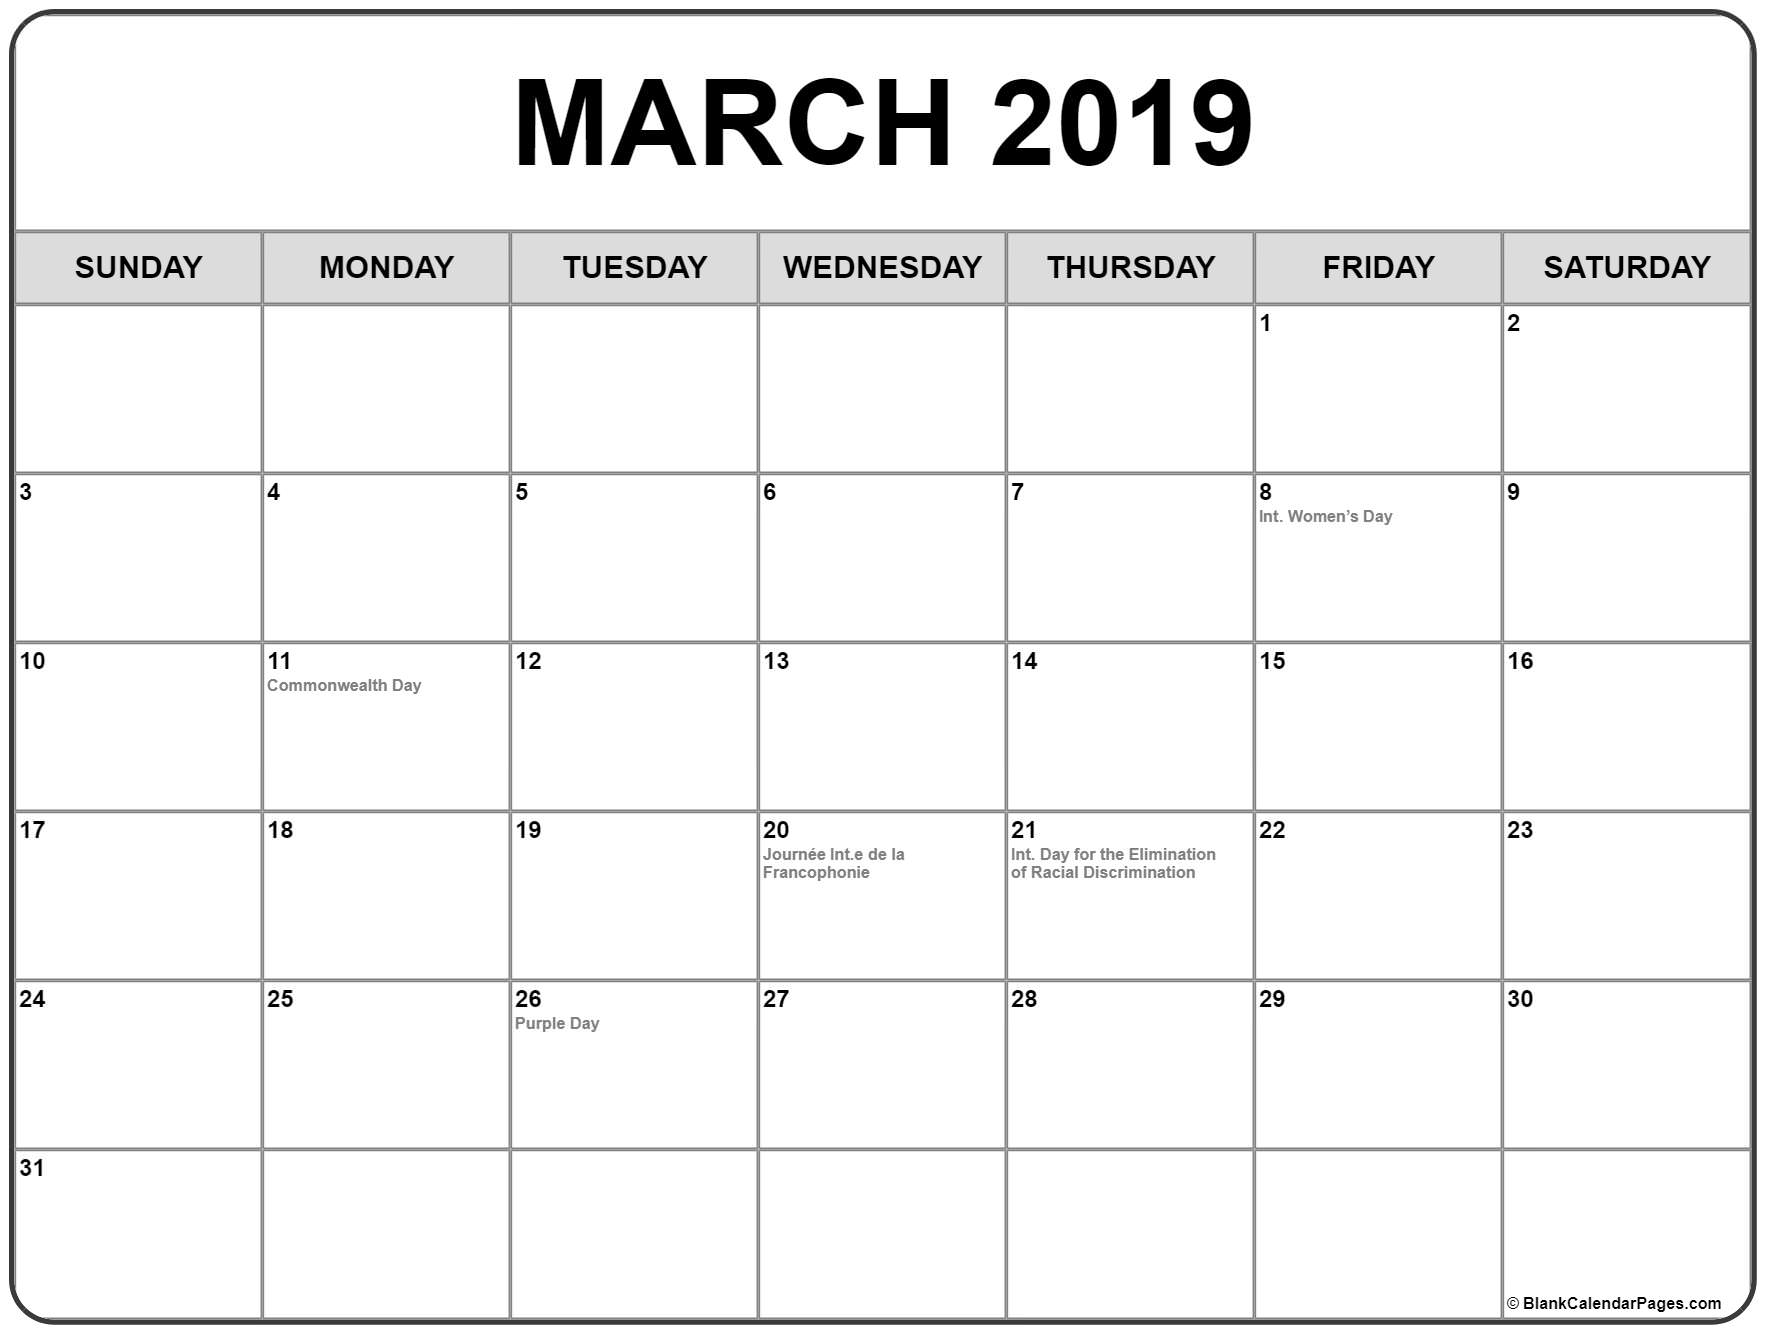 March 2019 Calendar Canada With Holidays - Free Printable